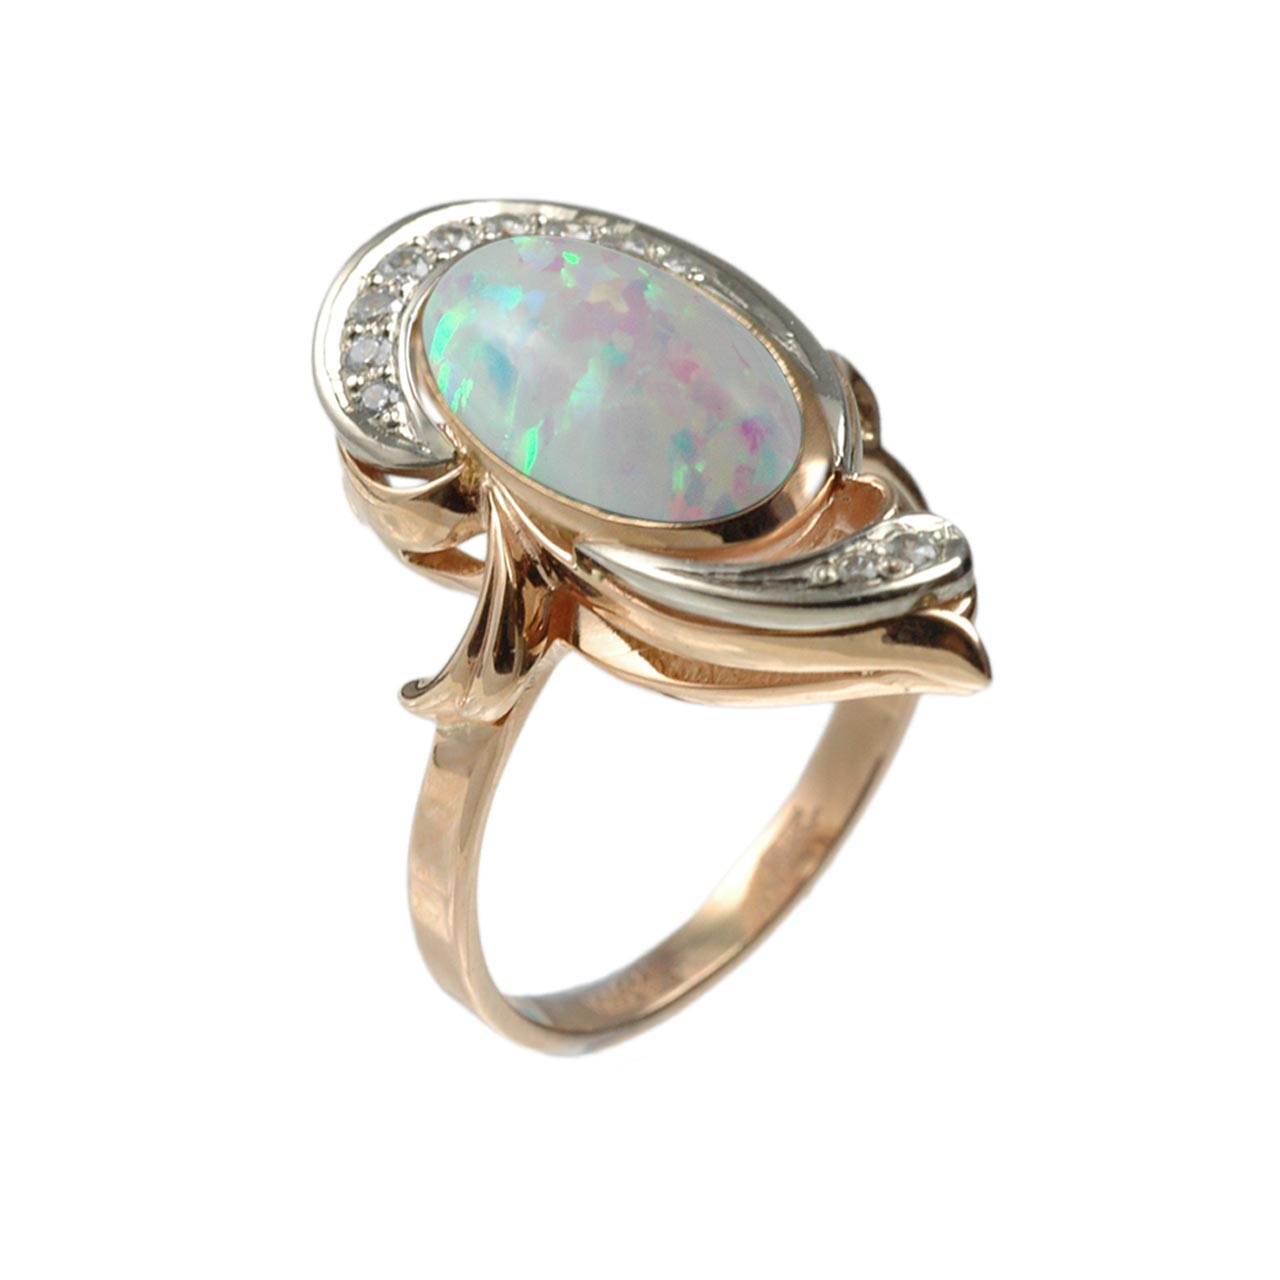 Vintage style ring with opal